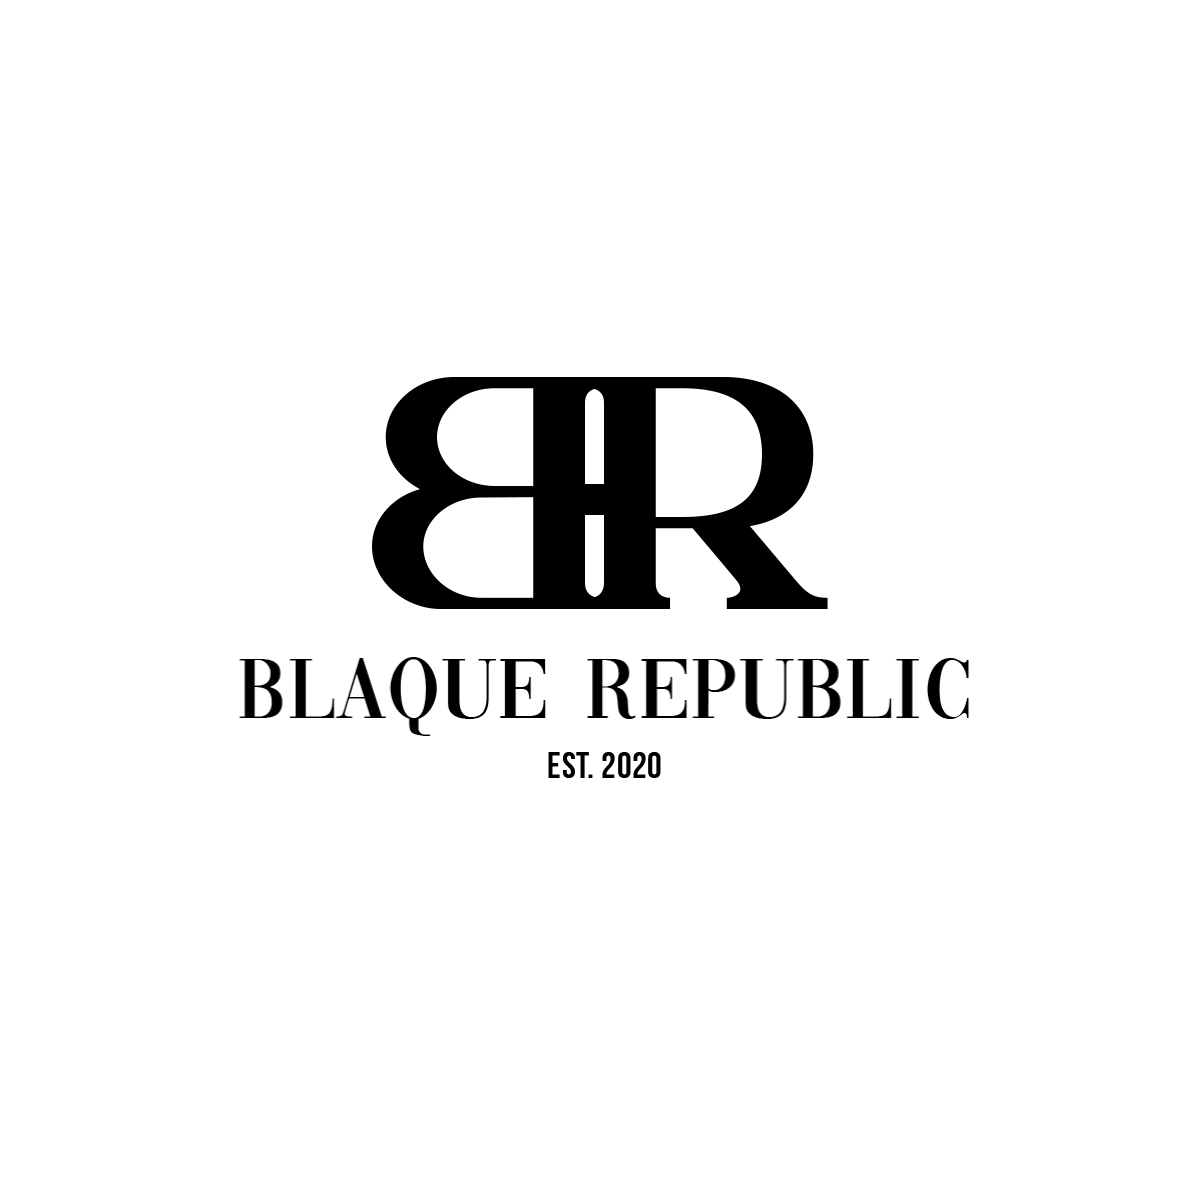 Blaque Republic